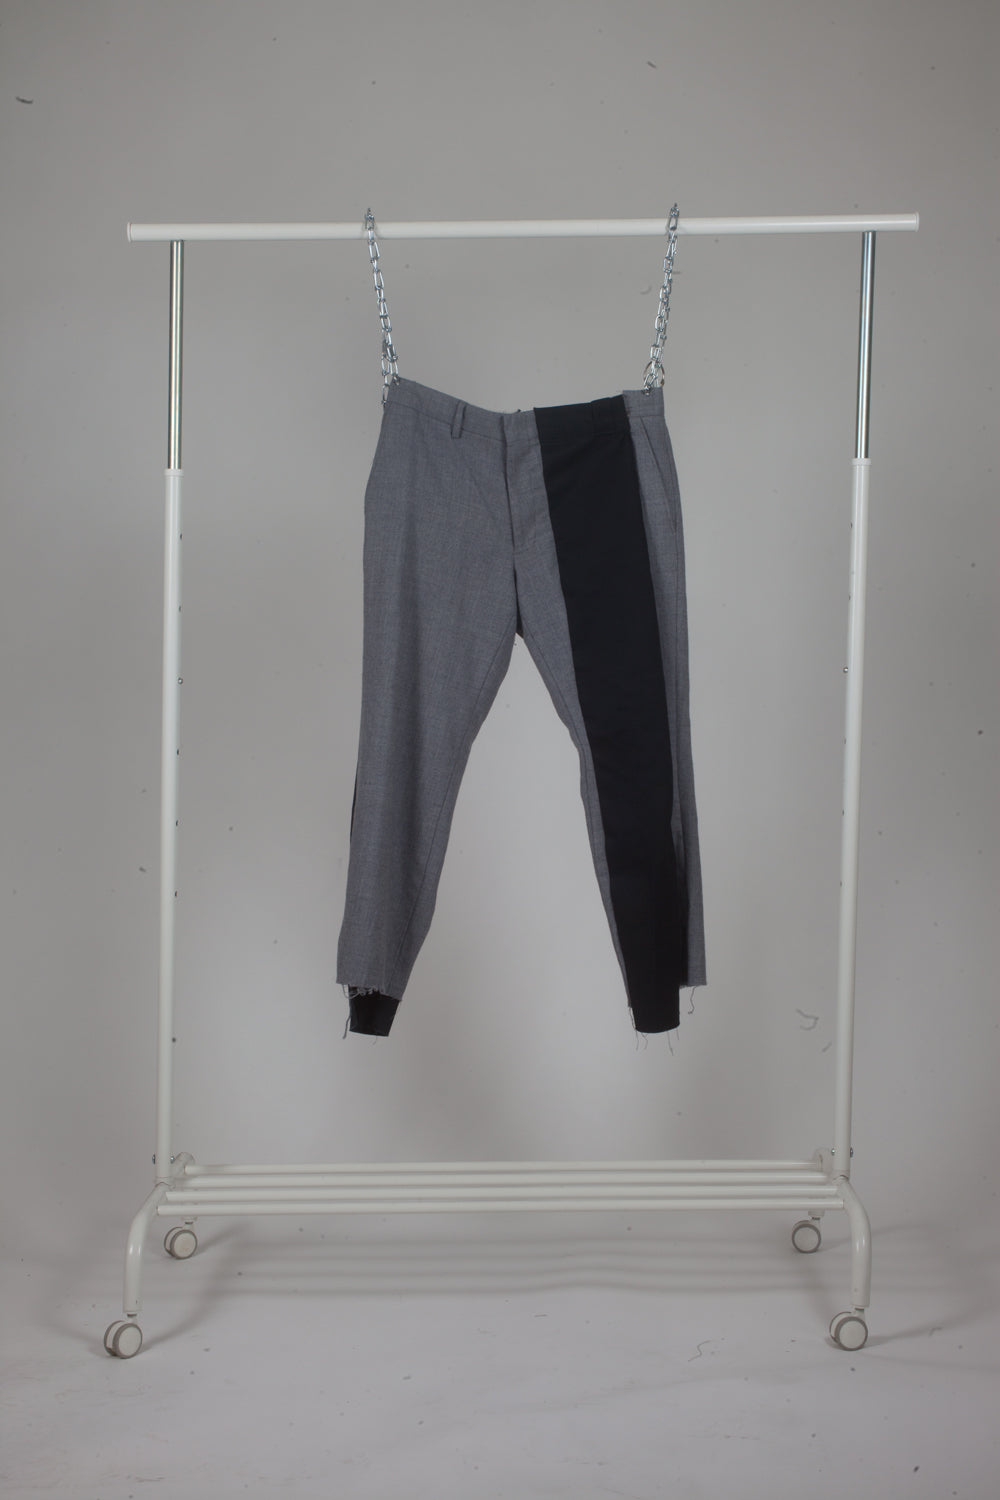 FFF Slacks (gray and black)